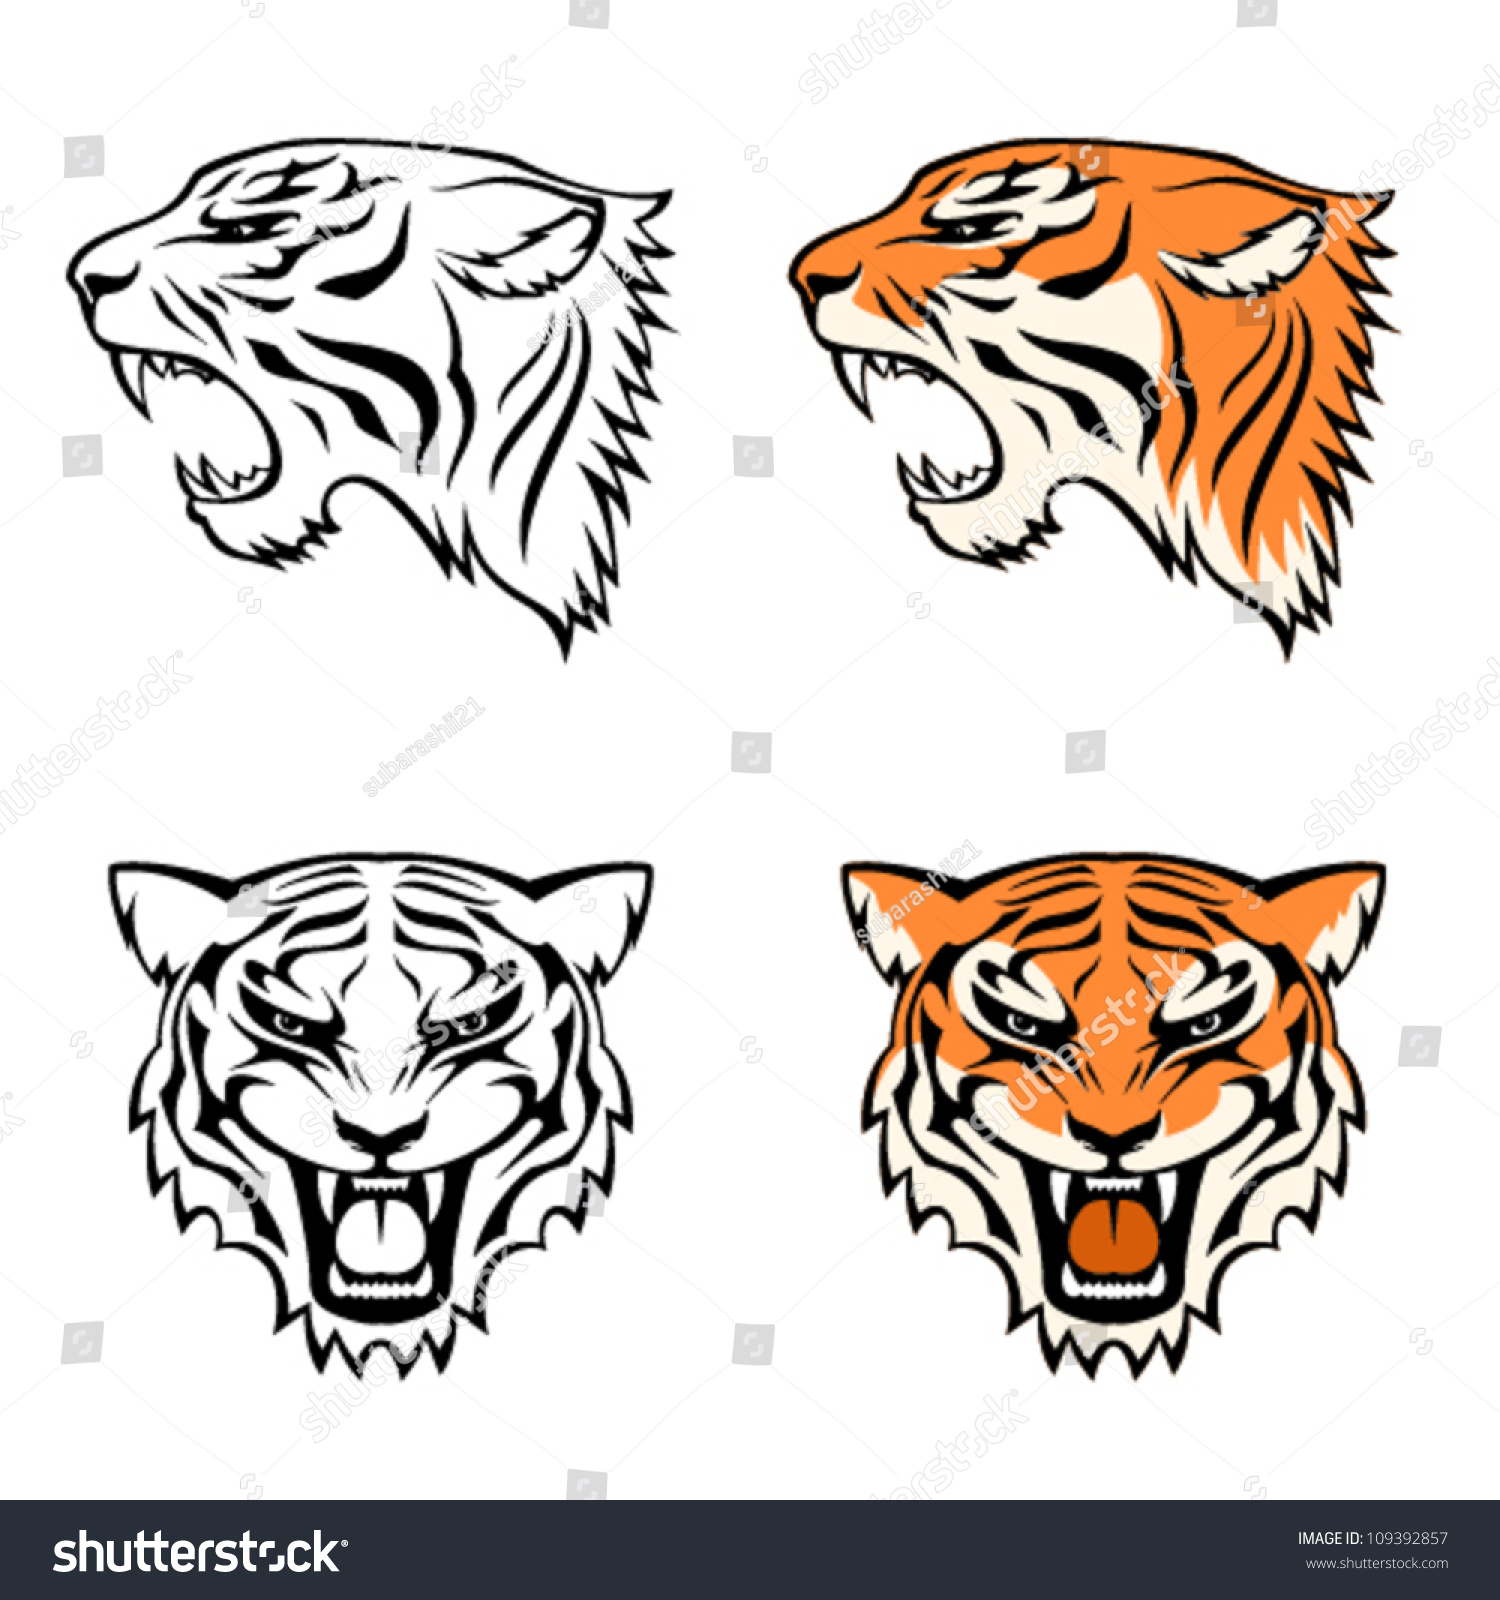 Line Drawing Of Tiger Face : Simple line illustrations tiger head profile stock vector